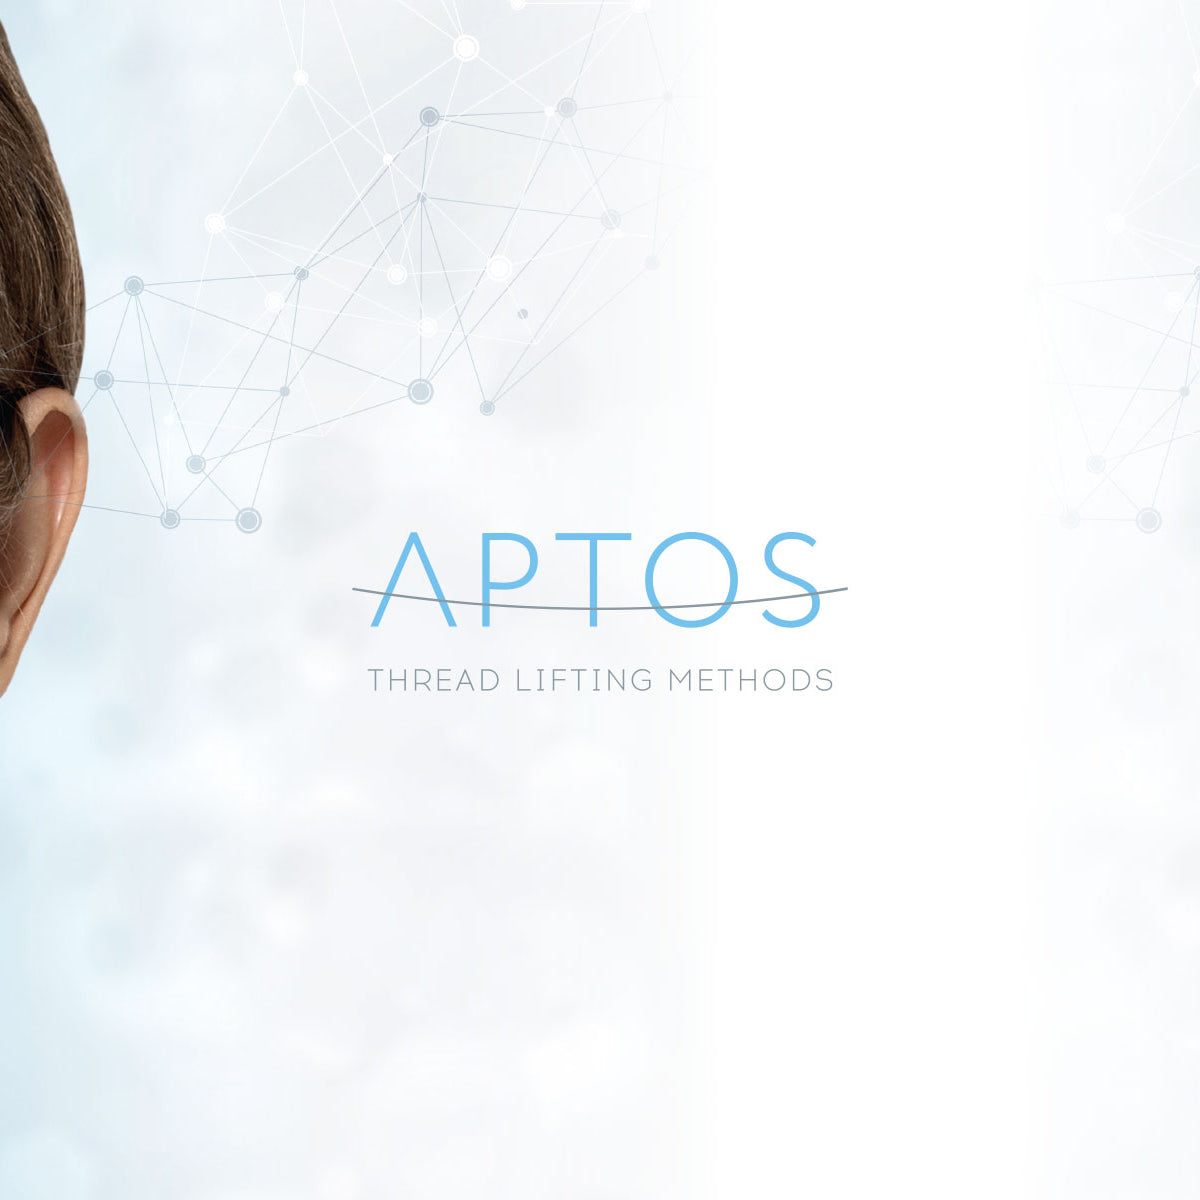 Aptos Thread, Thread Lifts, Thread Lifting, APTOS Thread Methods, aptos thread methods, sulamanidze, face lifting, Asclepion, Wontech, Wontech Lasers, Aesthetic Devices, Medical Devices, Aesthetic Training, excellence visage, visage excellence,